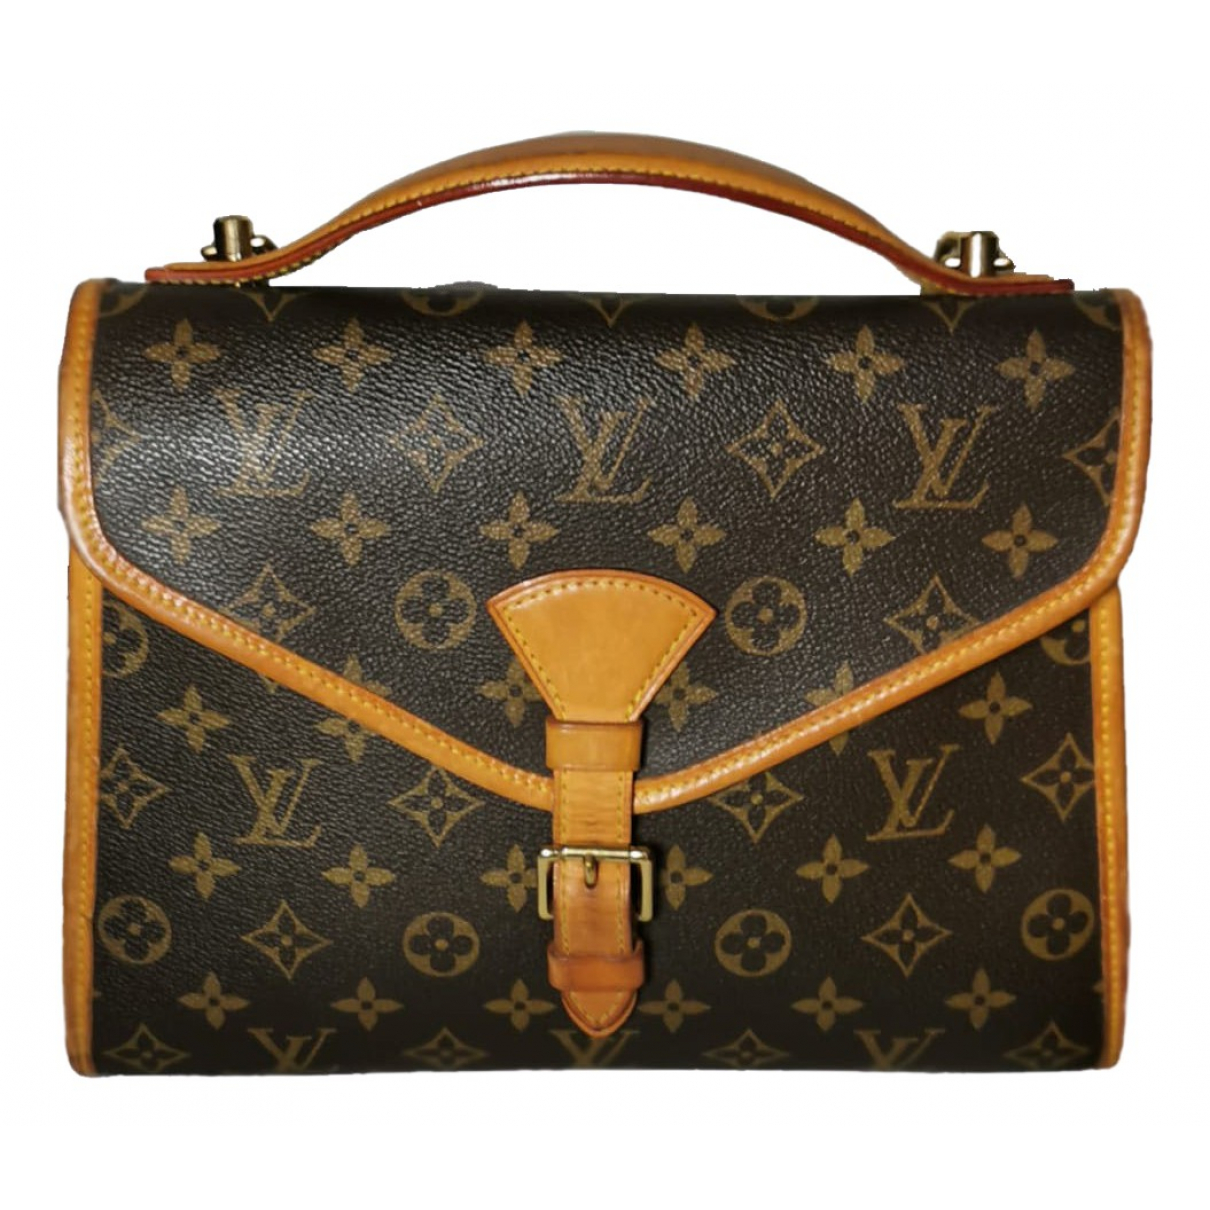 Bandolera Bel Air de Lona Louis Vuitton